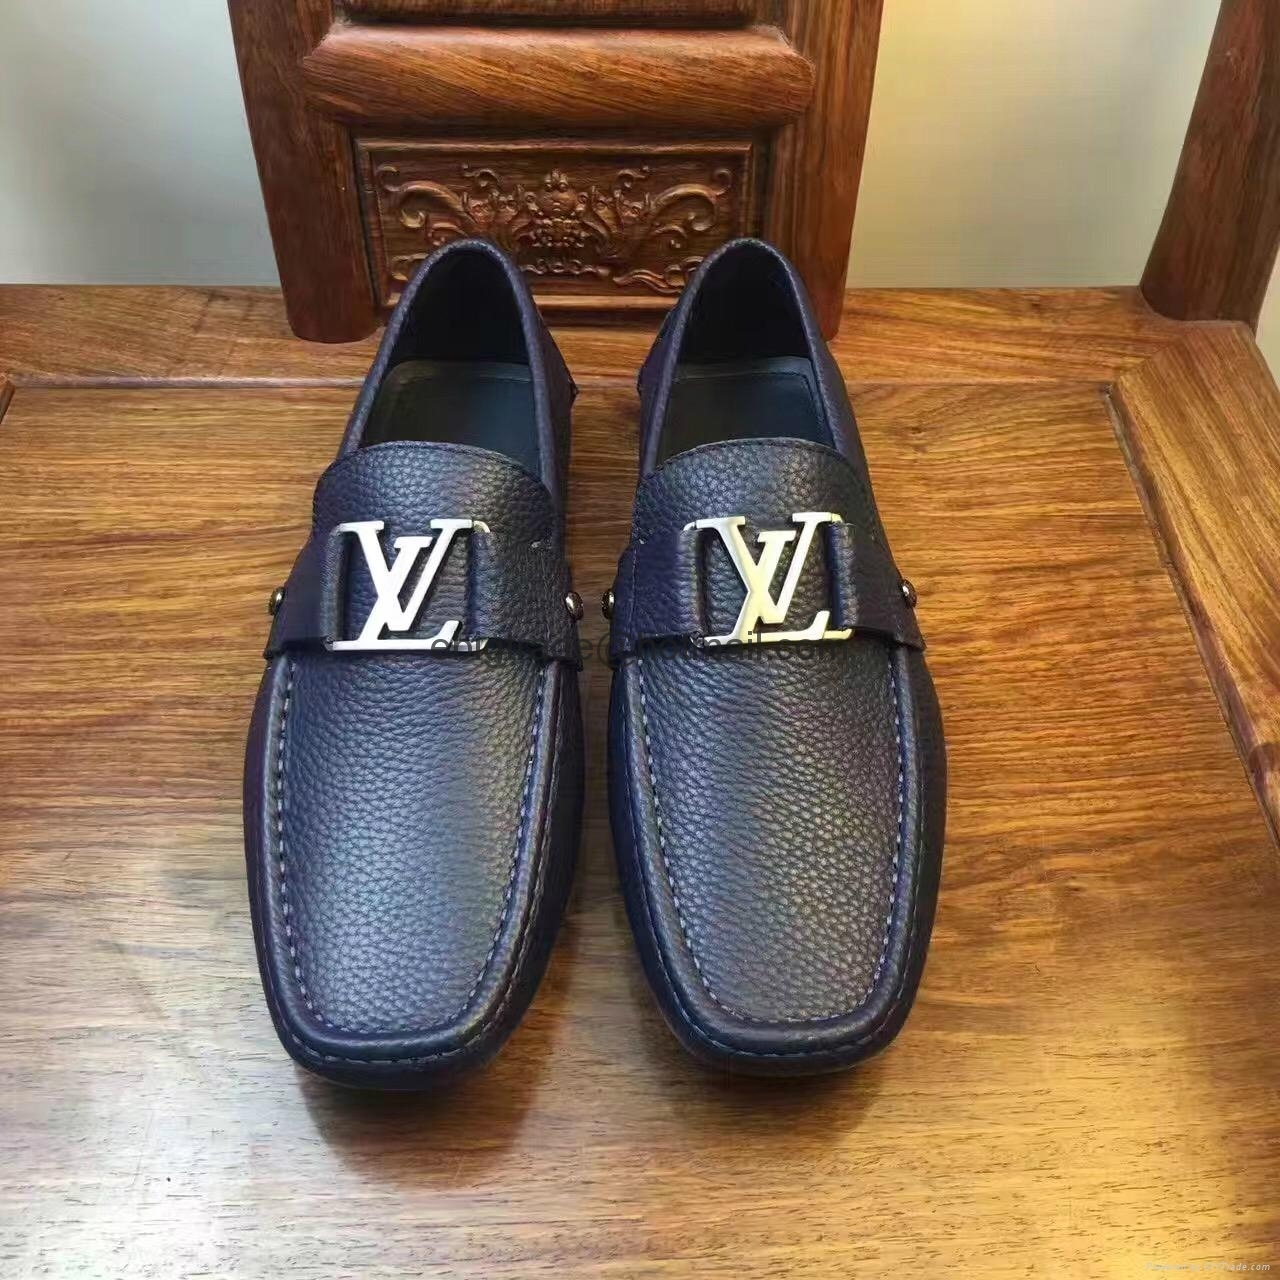 LV shoes leather